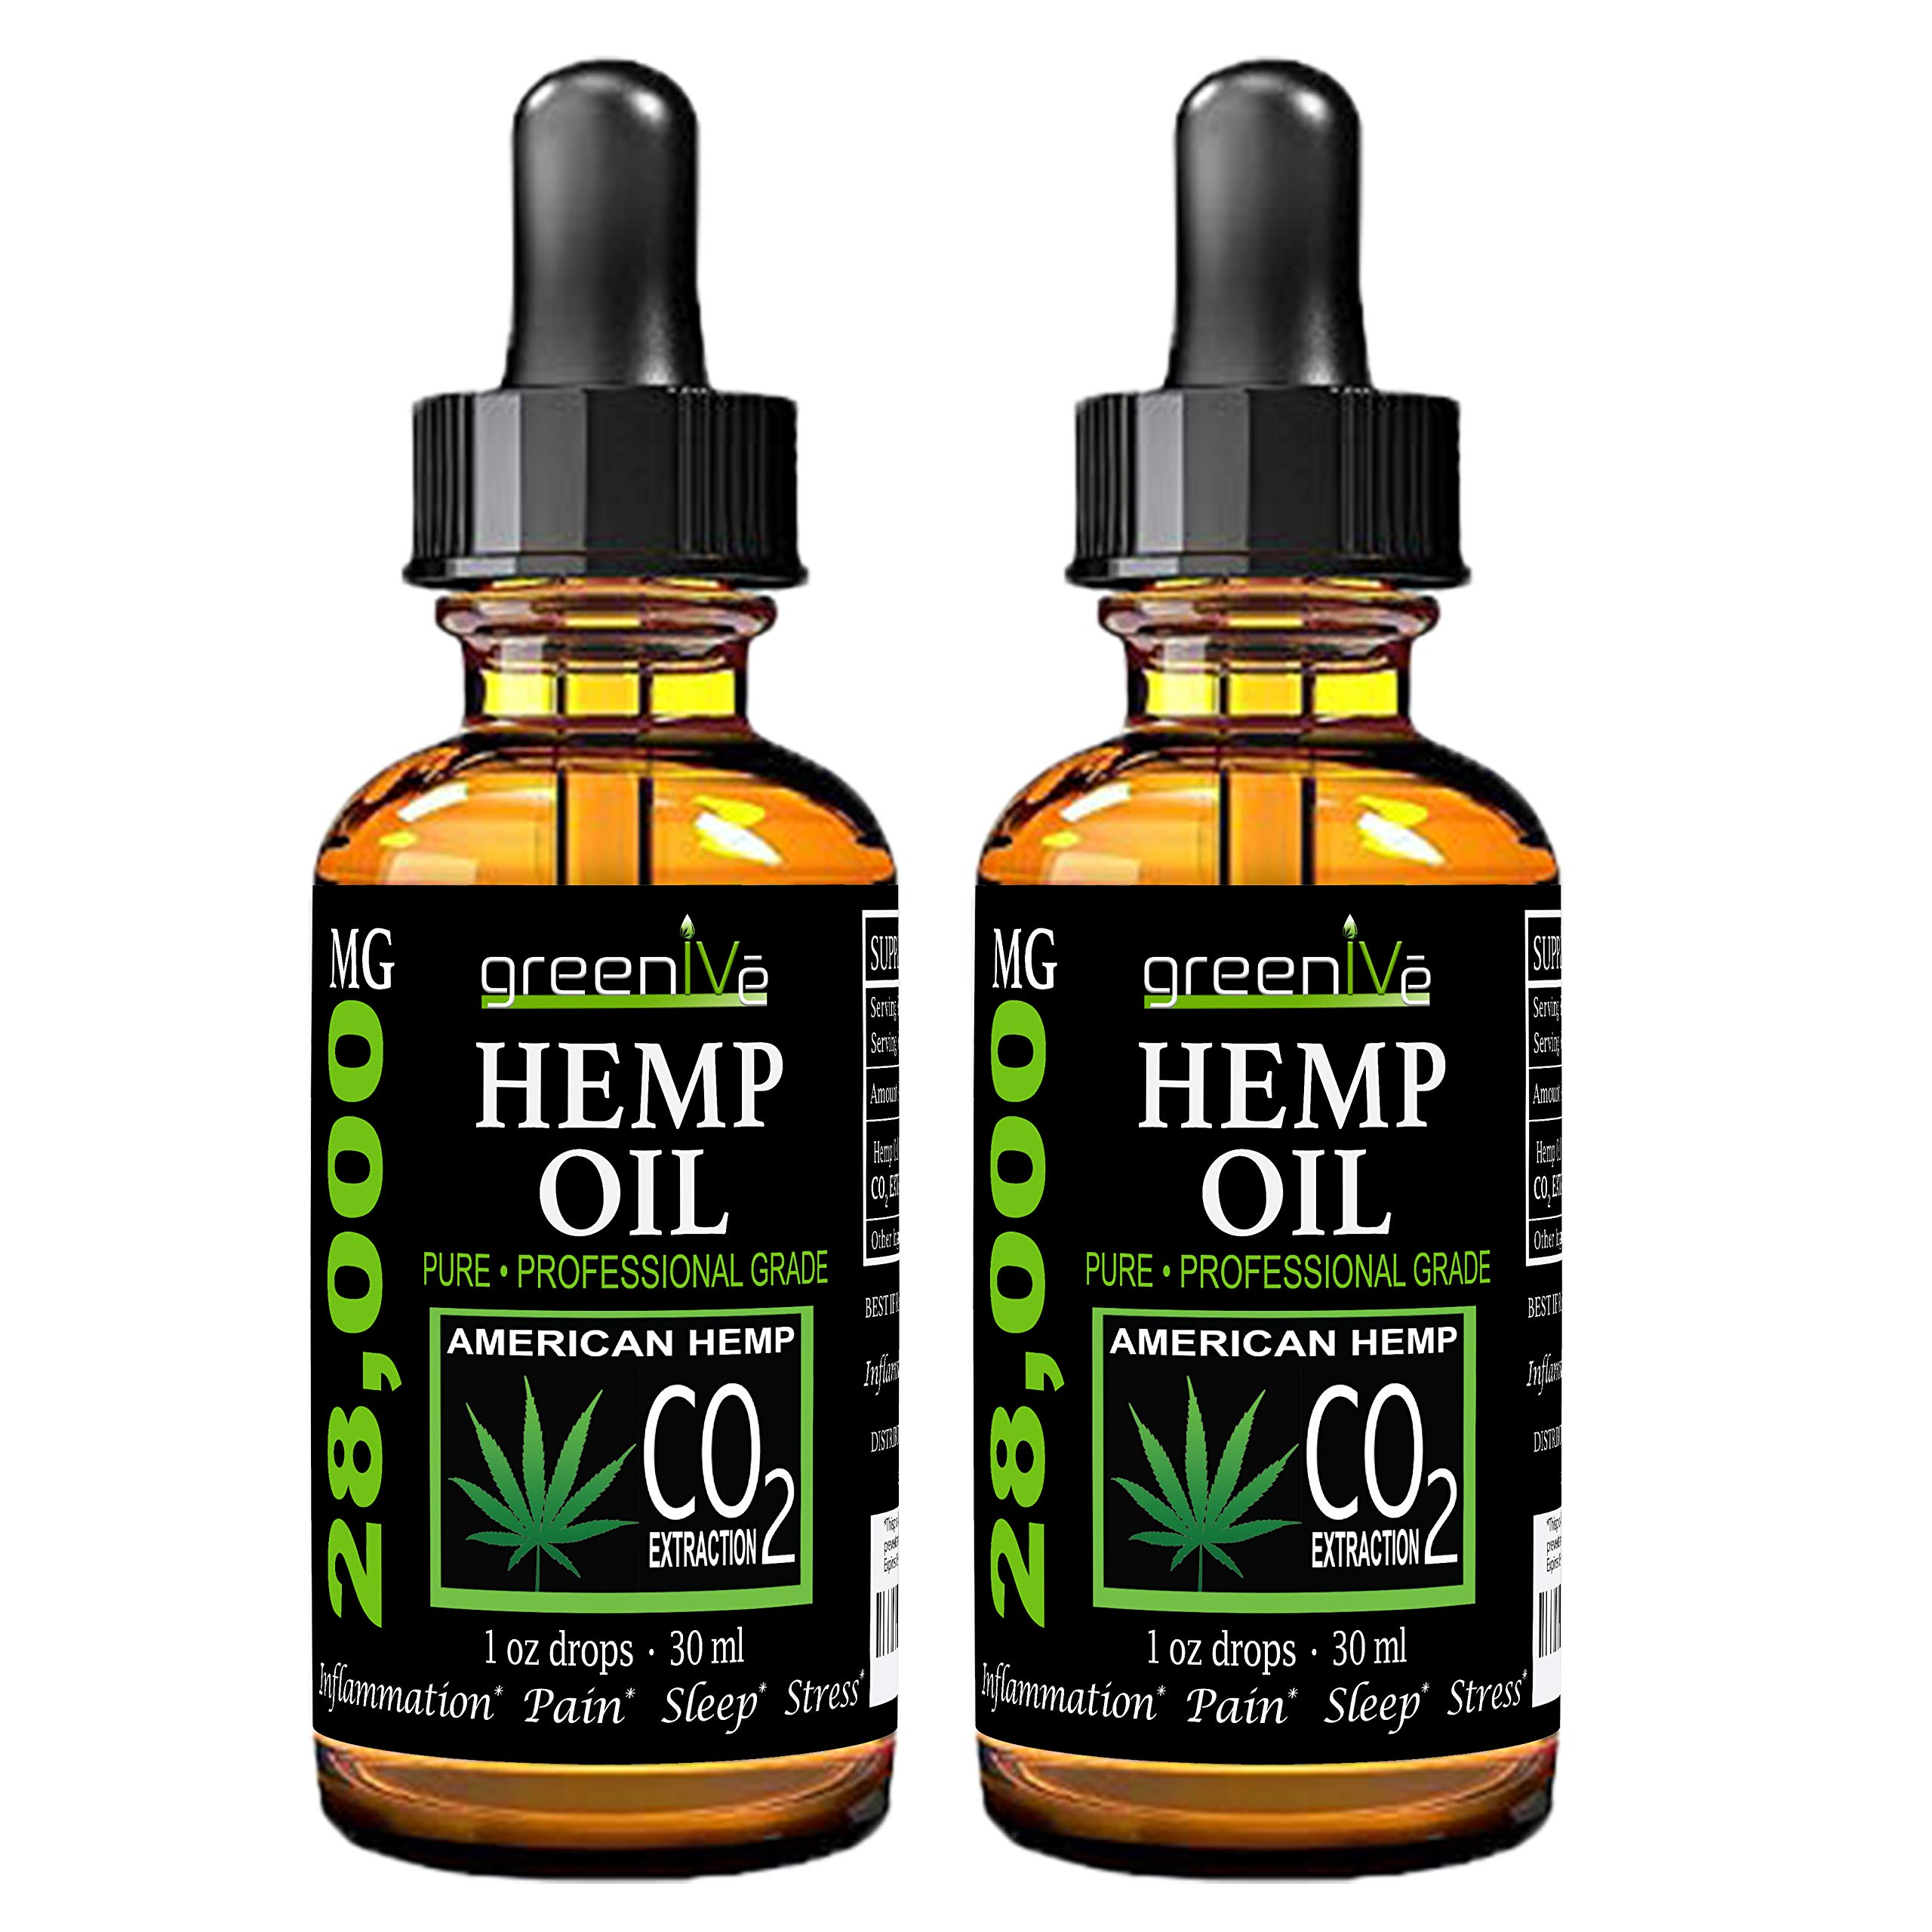 (2 Pack) GreenIVe 28,000mg Hemp Oil Anti-Inflammatory, Rapid Pain Relief, Stress Reducer, Vegan Omegas C02 Extraction Exclusively on Amazon (2 Pack) by Greenive